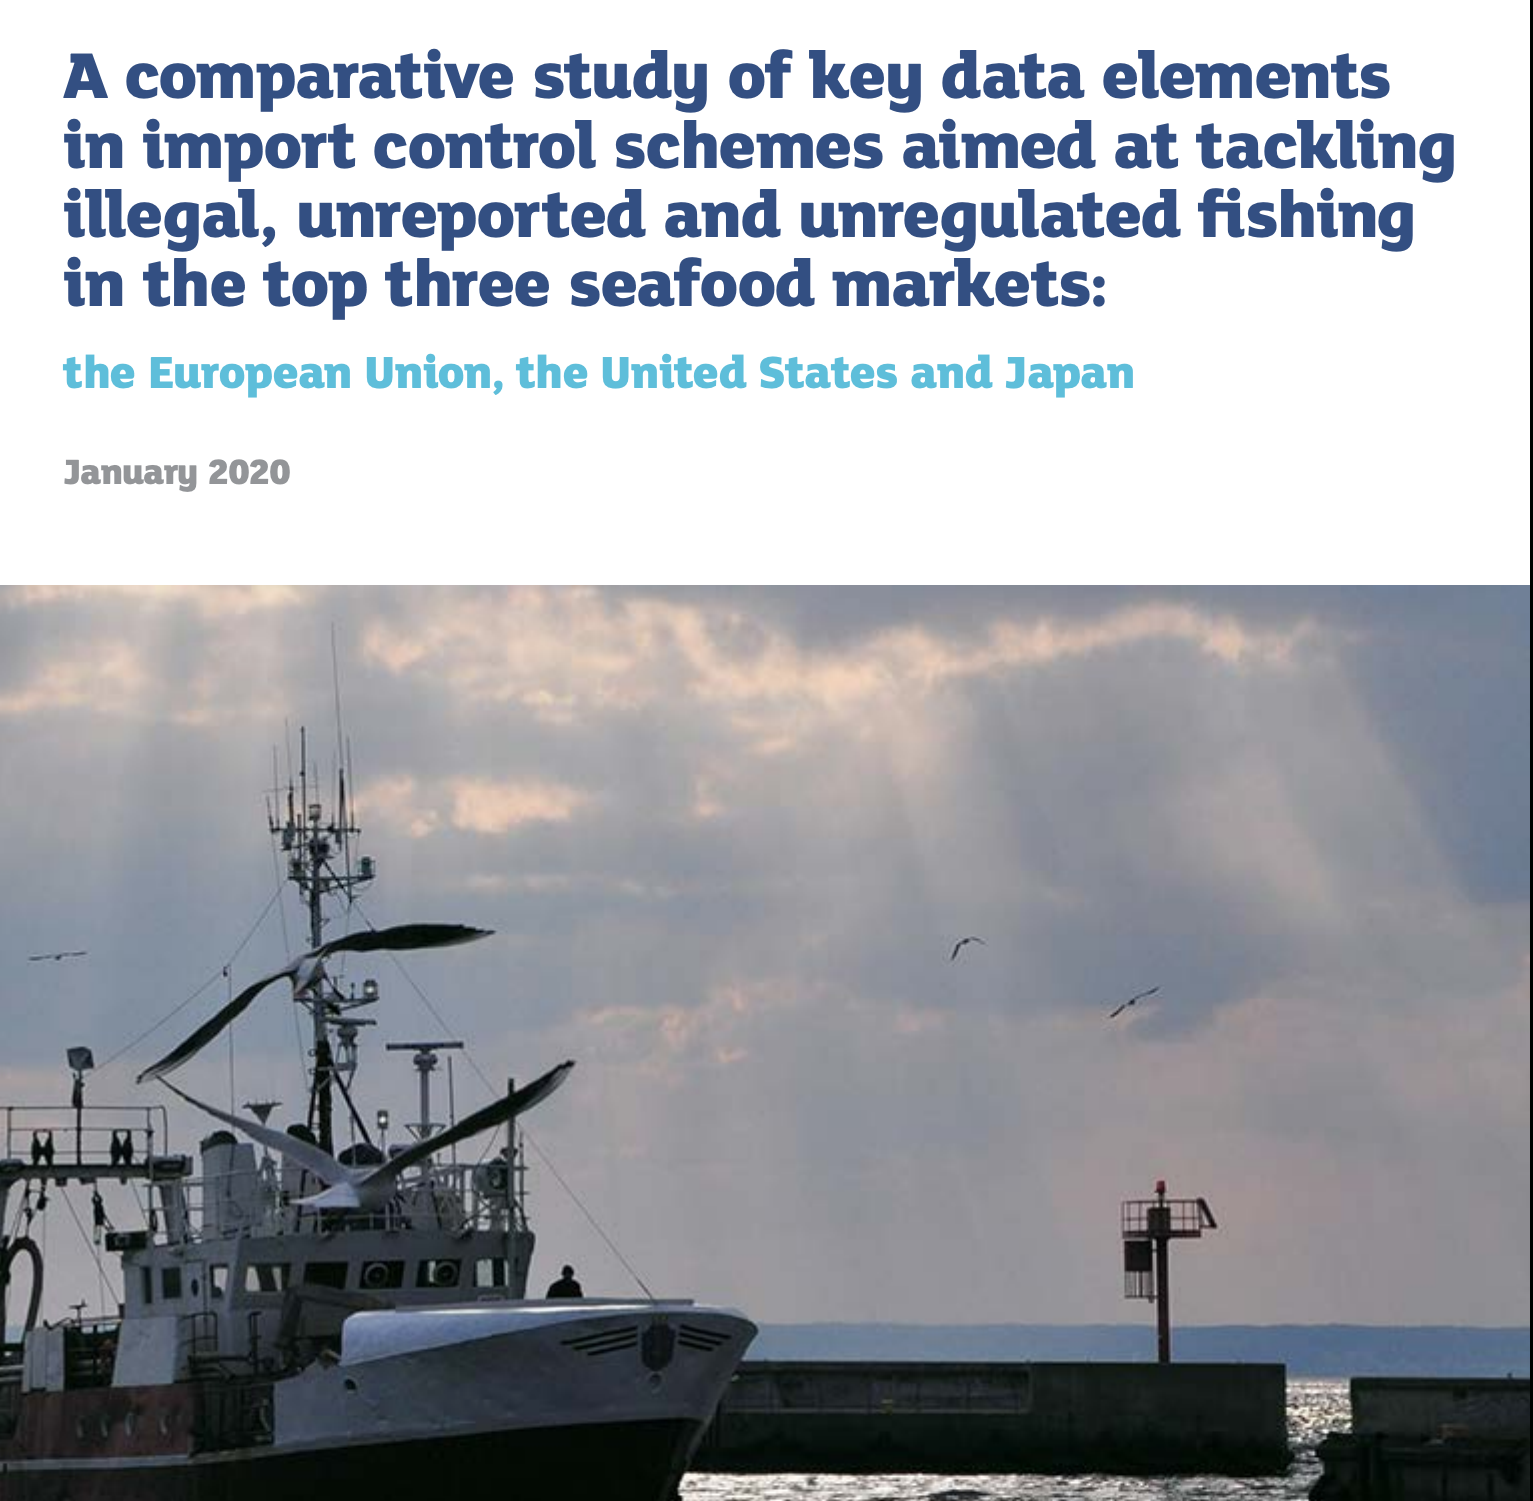 Comparative Study of Key Data Elements for Import Control Schemes of the Top Three Seafood Markets: EU, US, & Japan